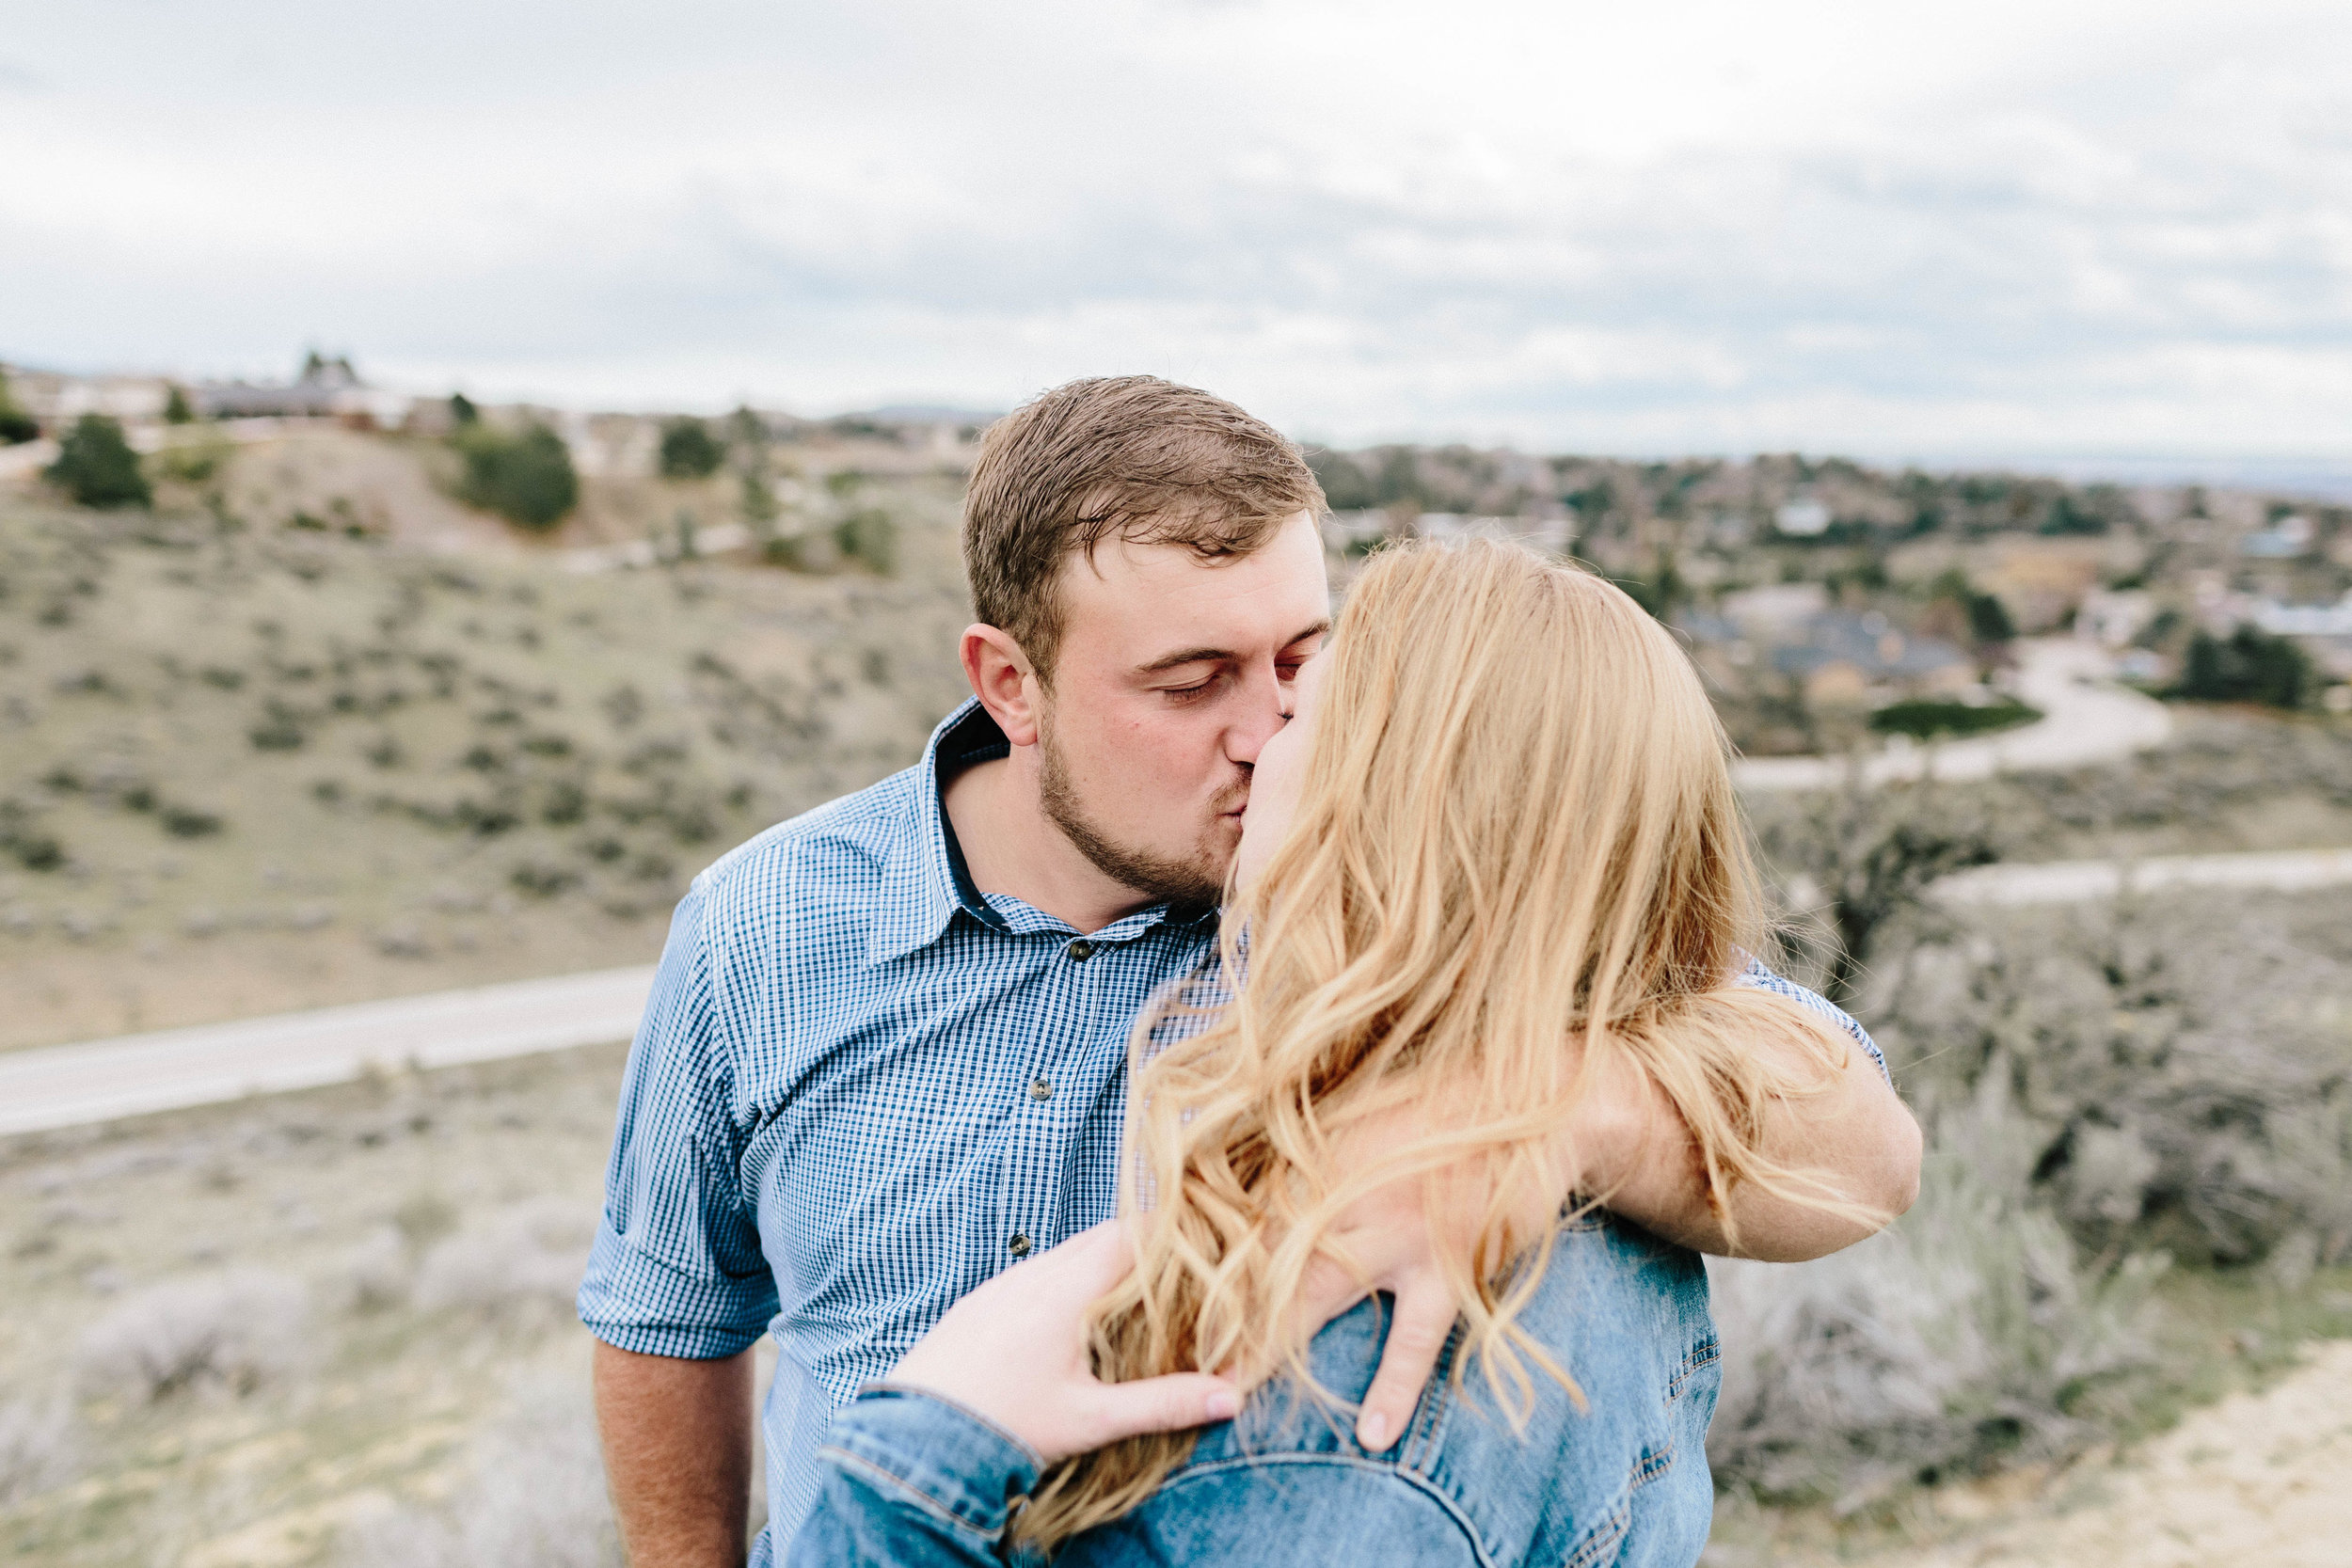 Rohan-and-Lydia-Boise-Foothills-Engagement-Session-67.jpg